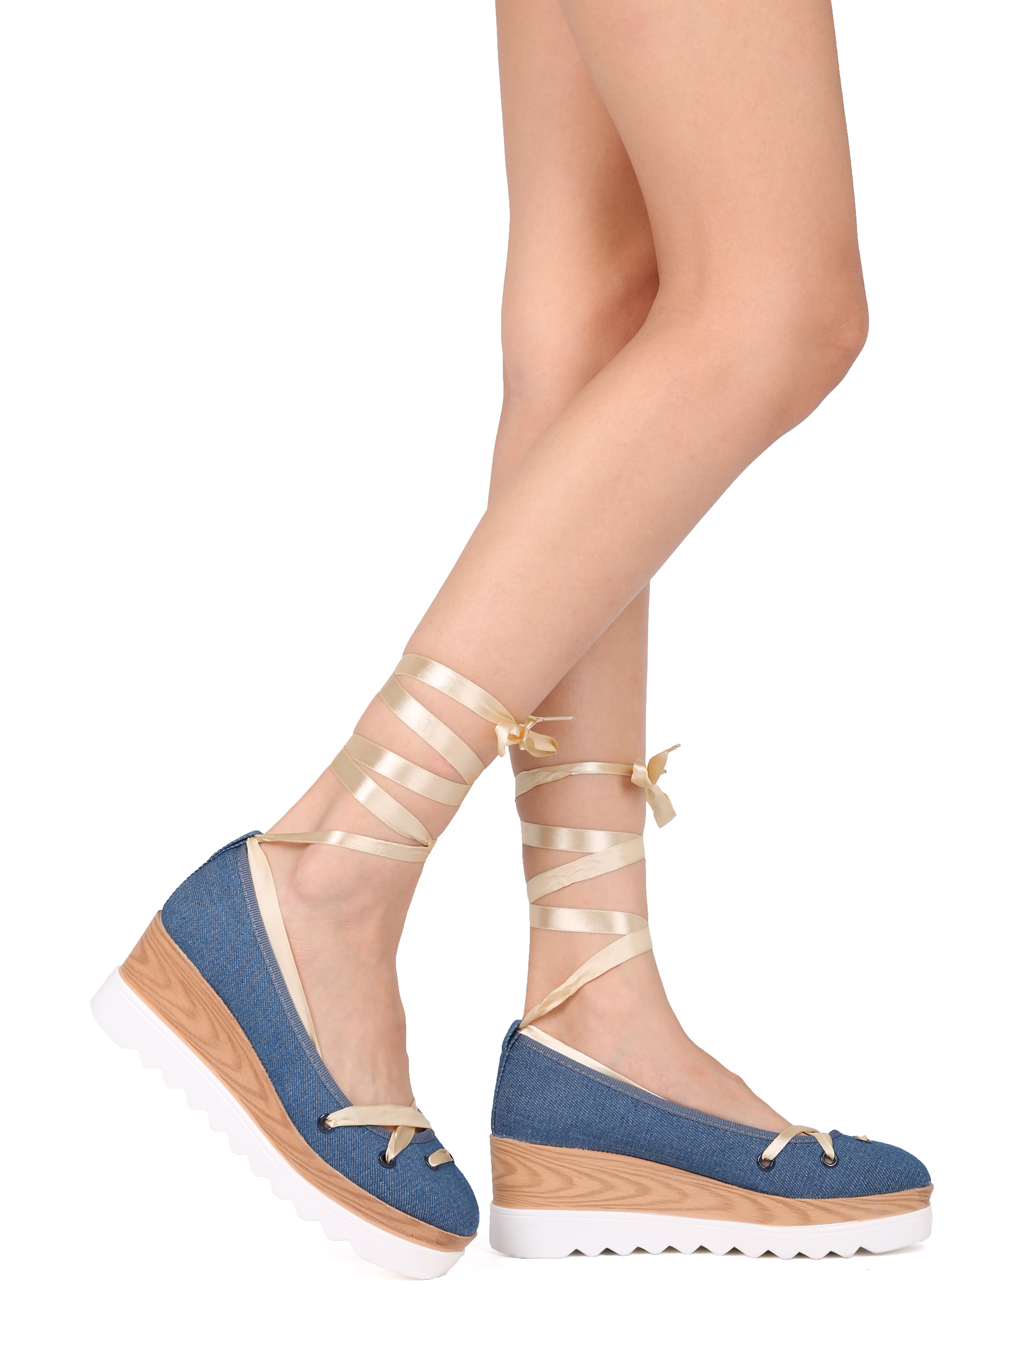 65cb51499f9 Alriscr - Women Denim Lace Up Ankle Wrap Double Stacked Wedge Heel - IA34  By Cape Robbin - Walmart.com